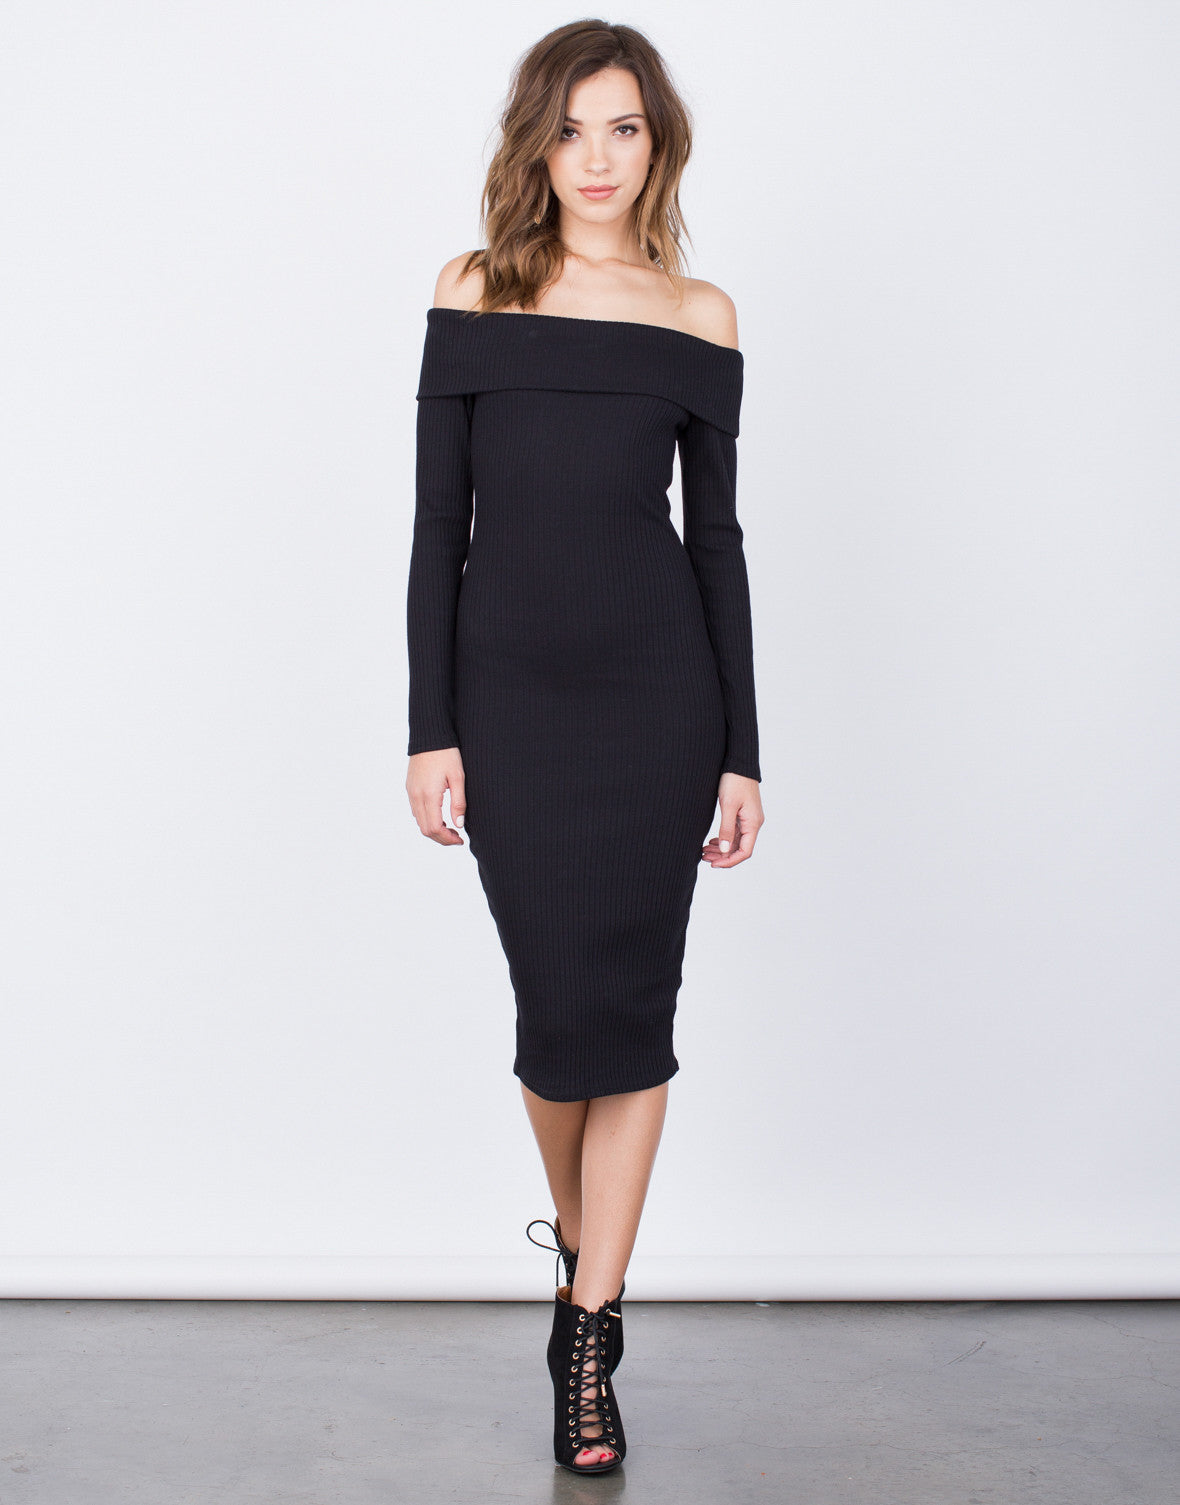 a78f1689018 Off-the-Shoulder Bodycon Dress - Ribbed Midi Dress - Little Black ...